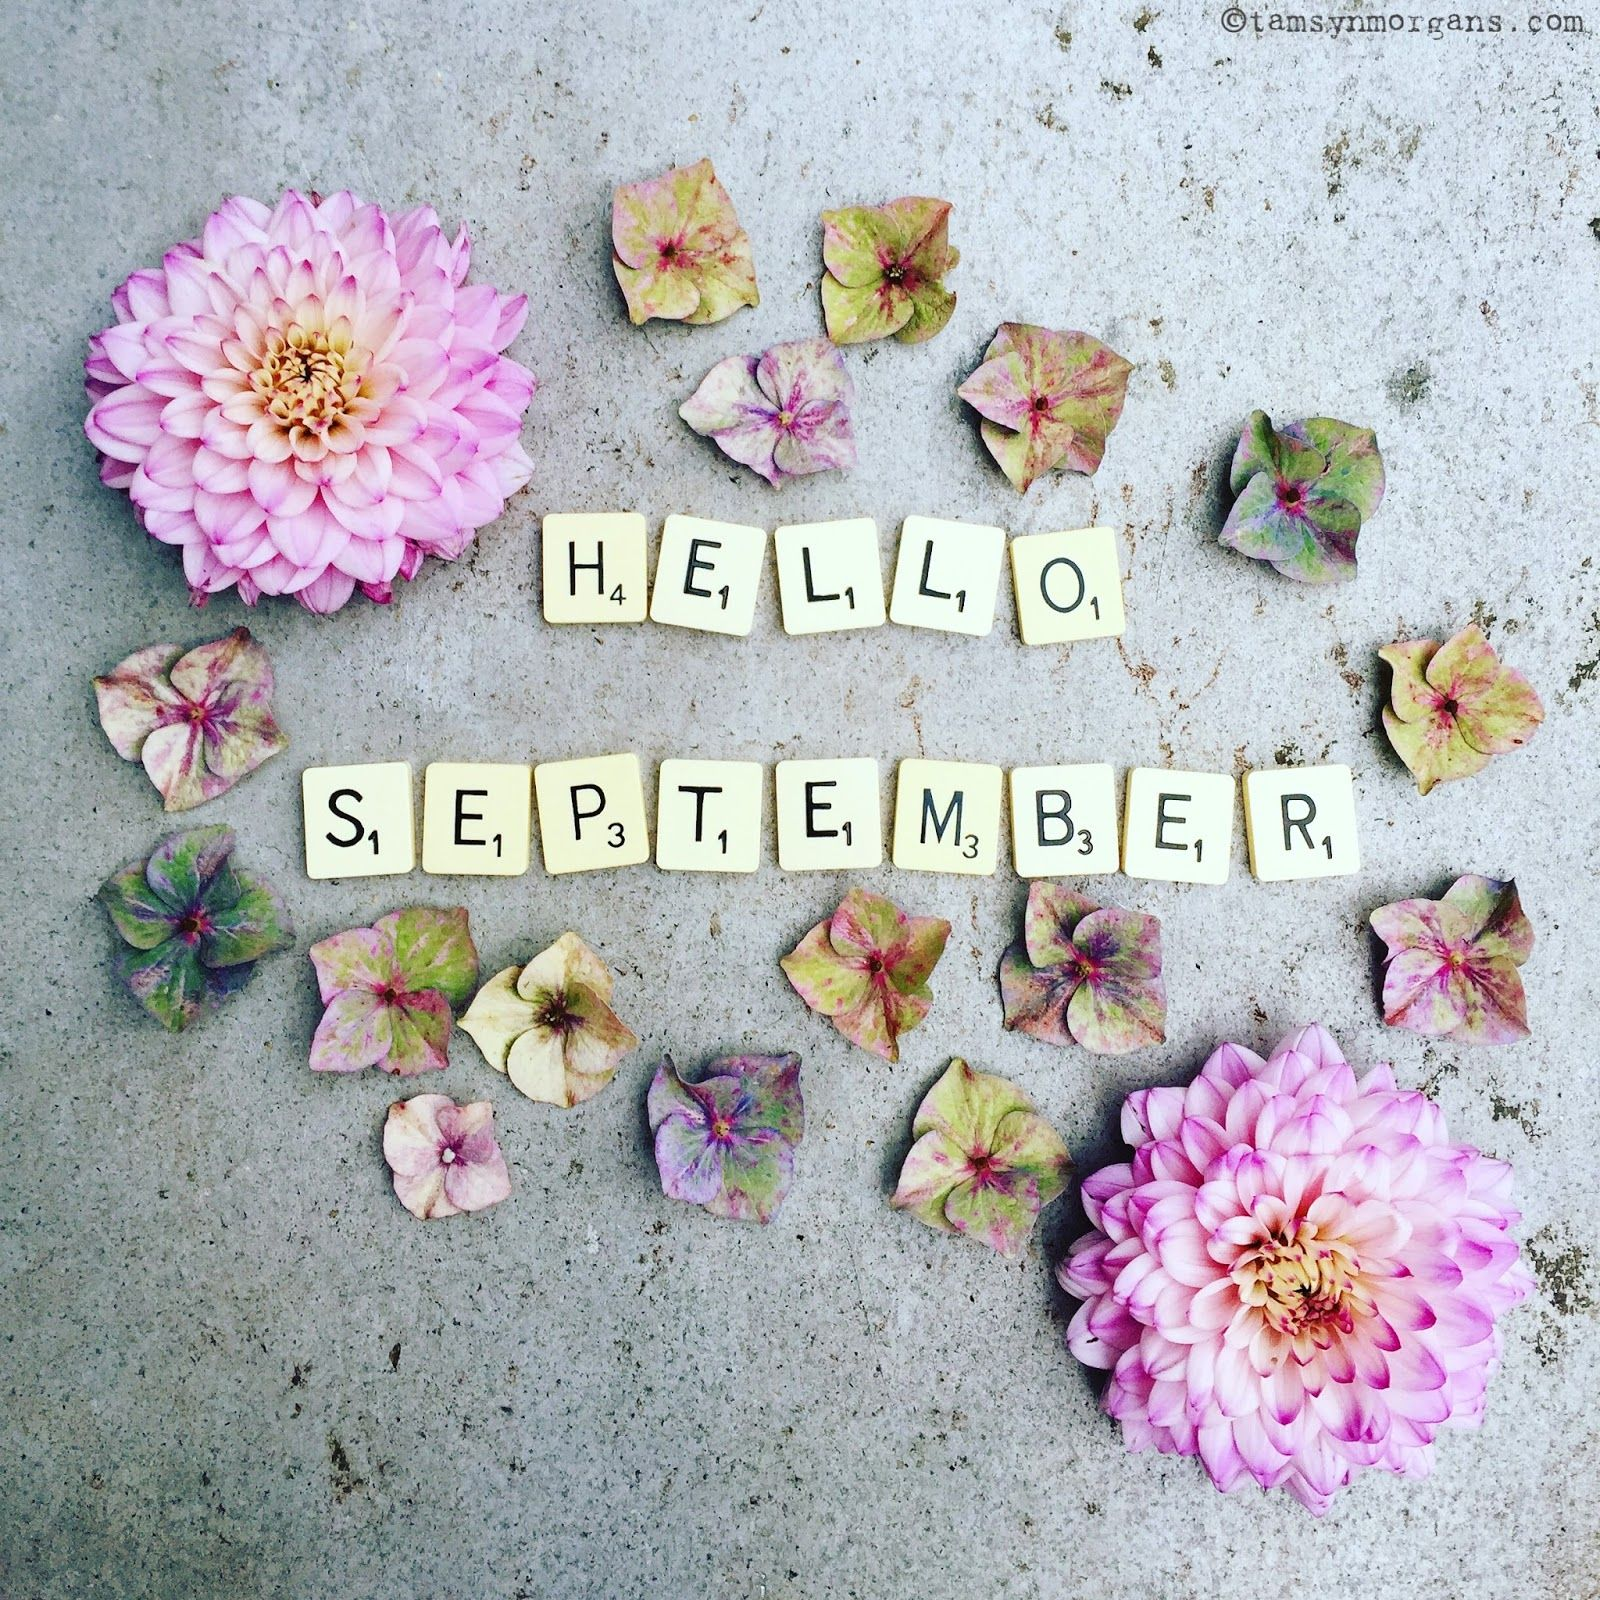 Tamsyn Morgans | Hello September!